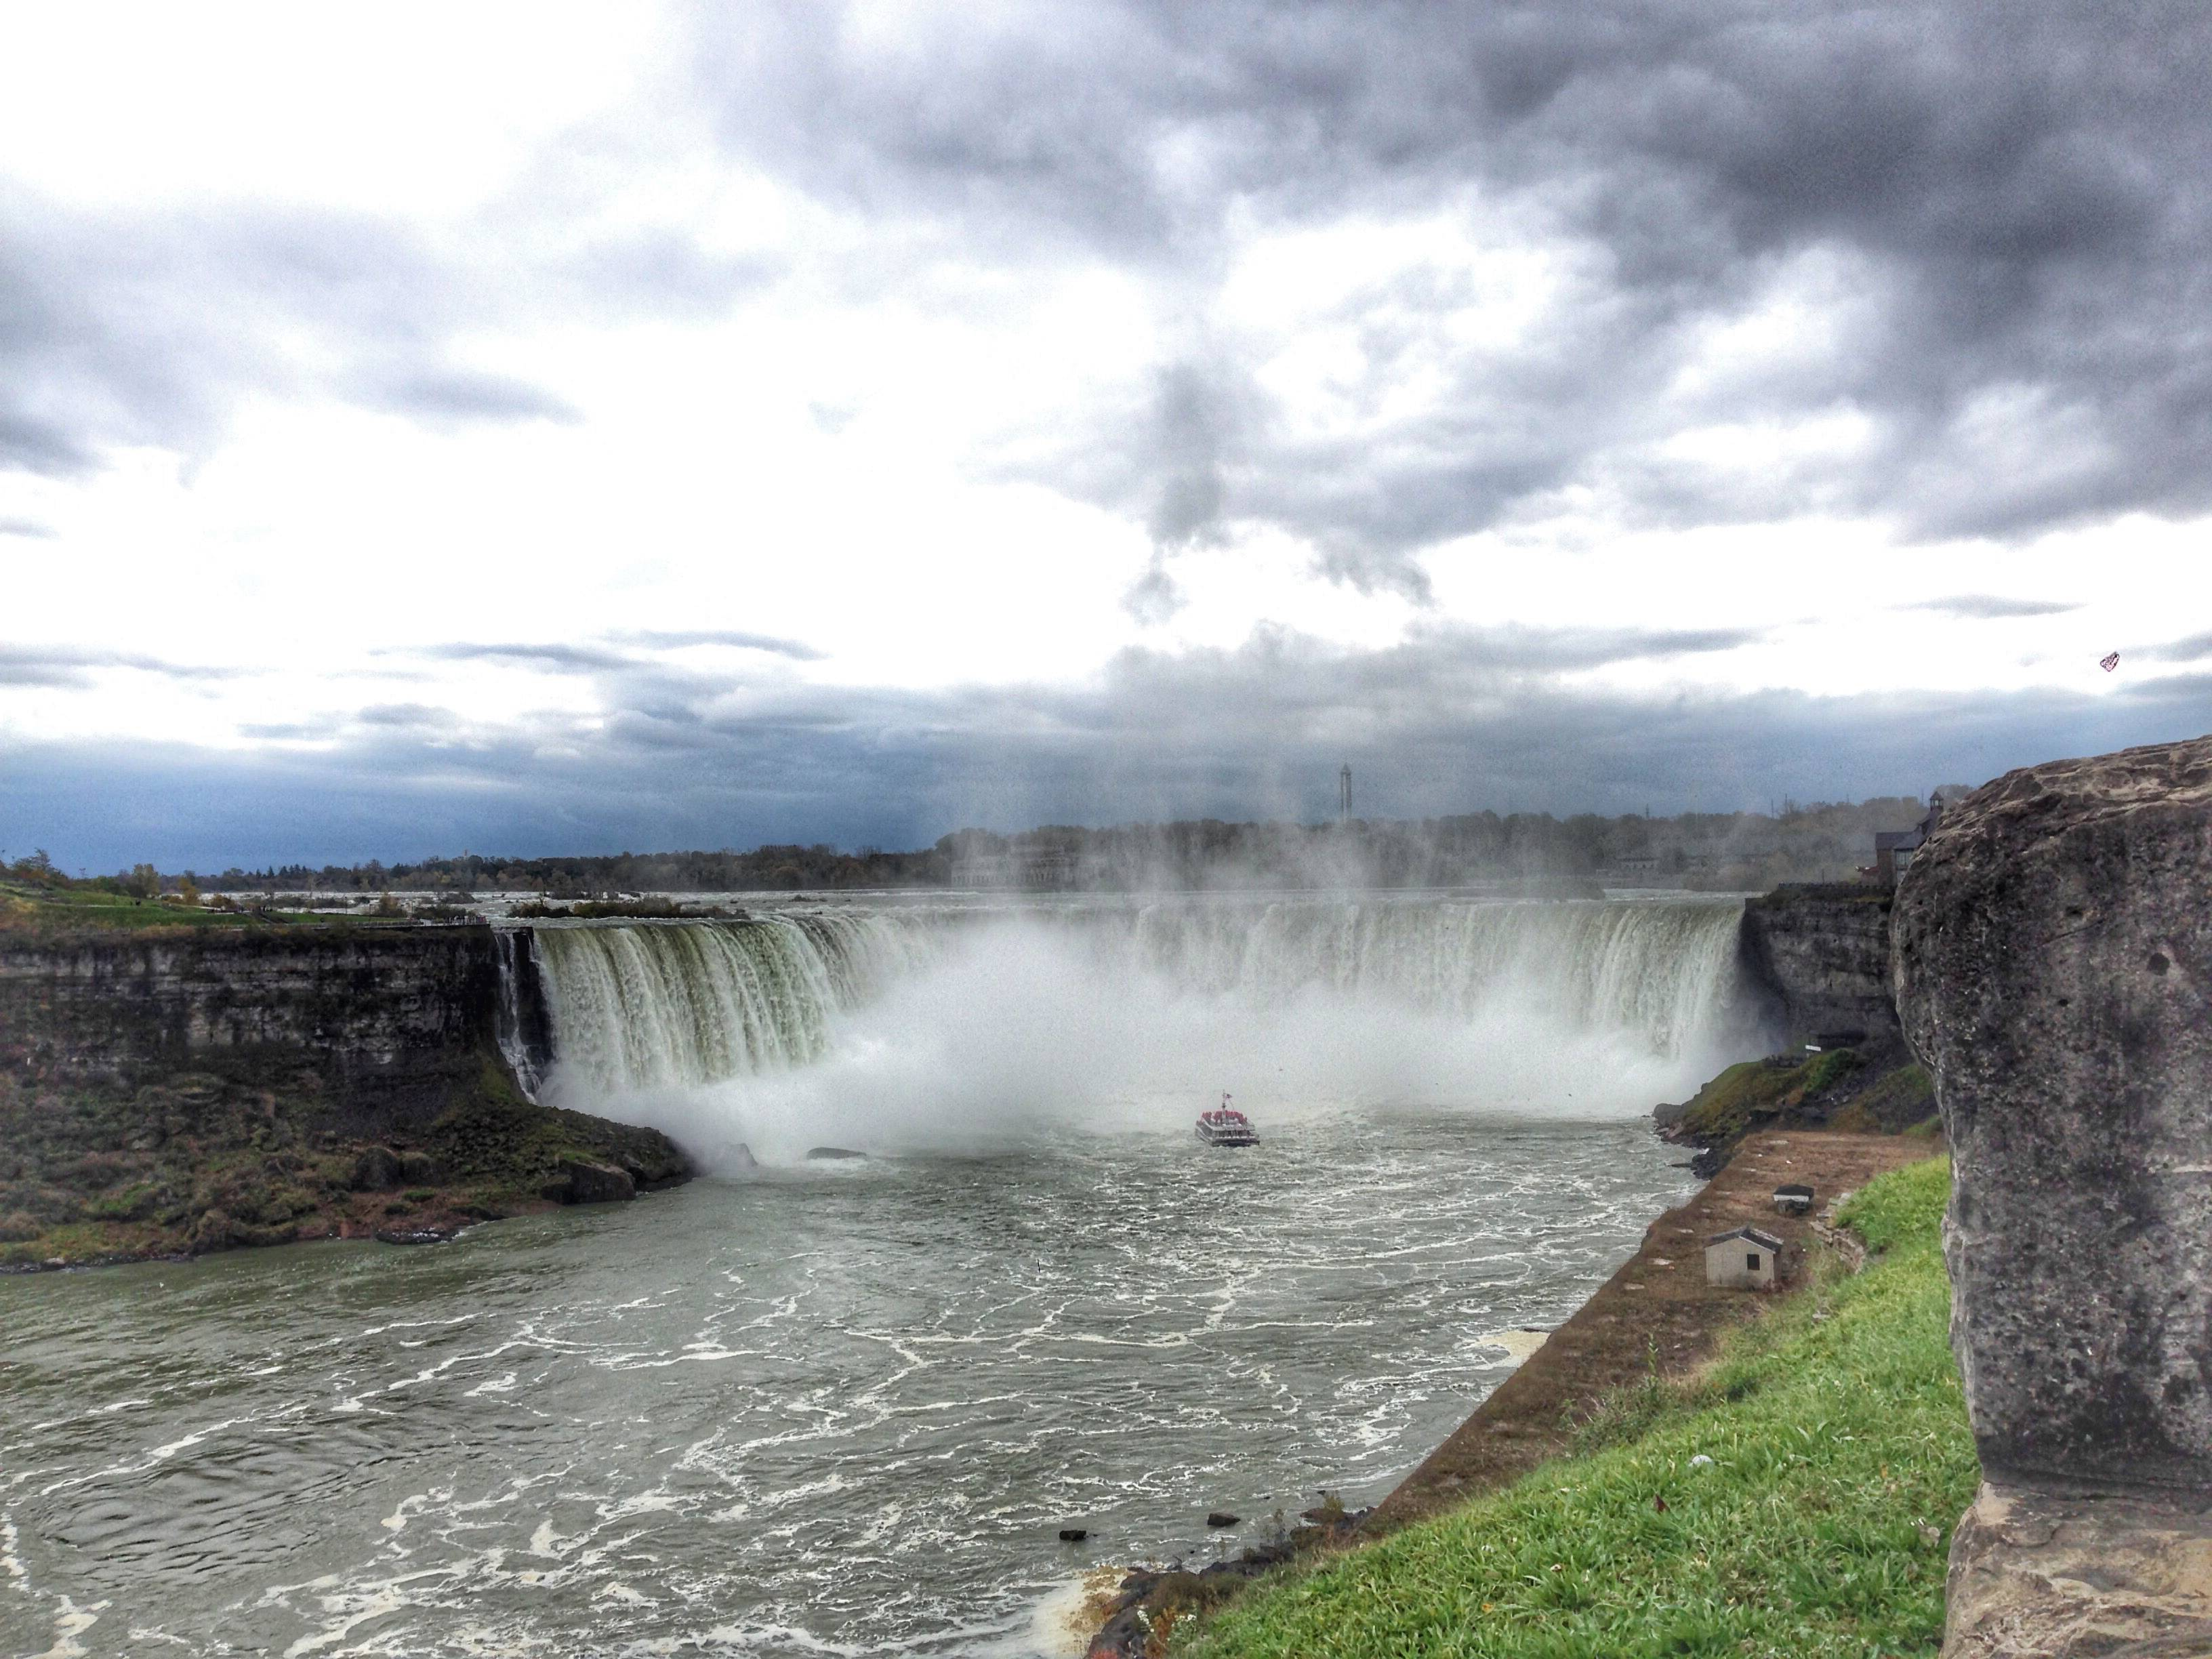 Photo 3: Chutes du Niagara partie canadienne